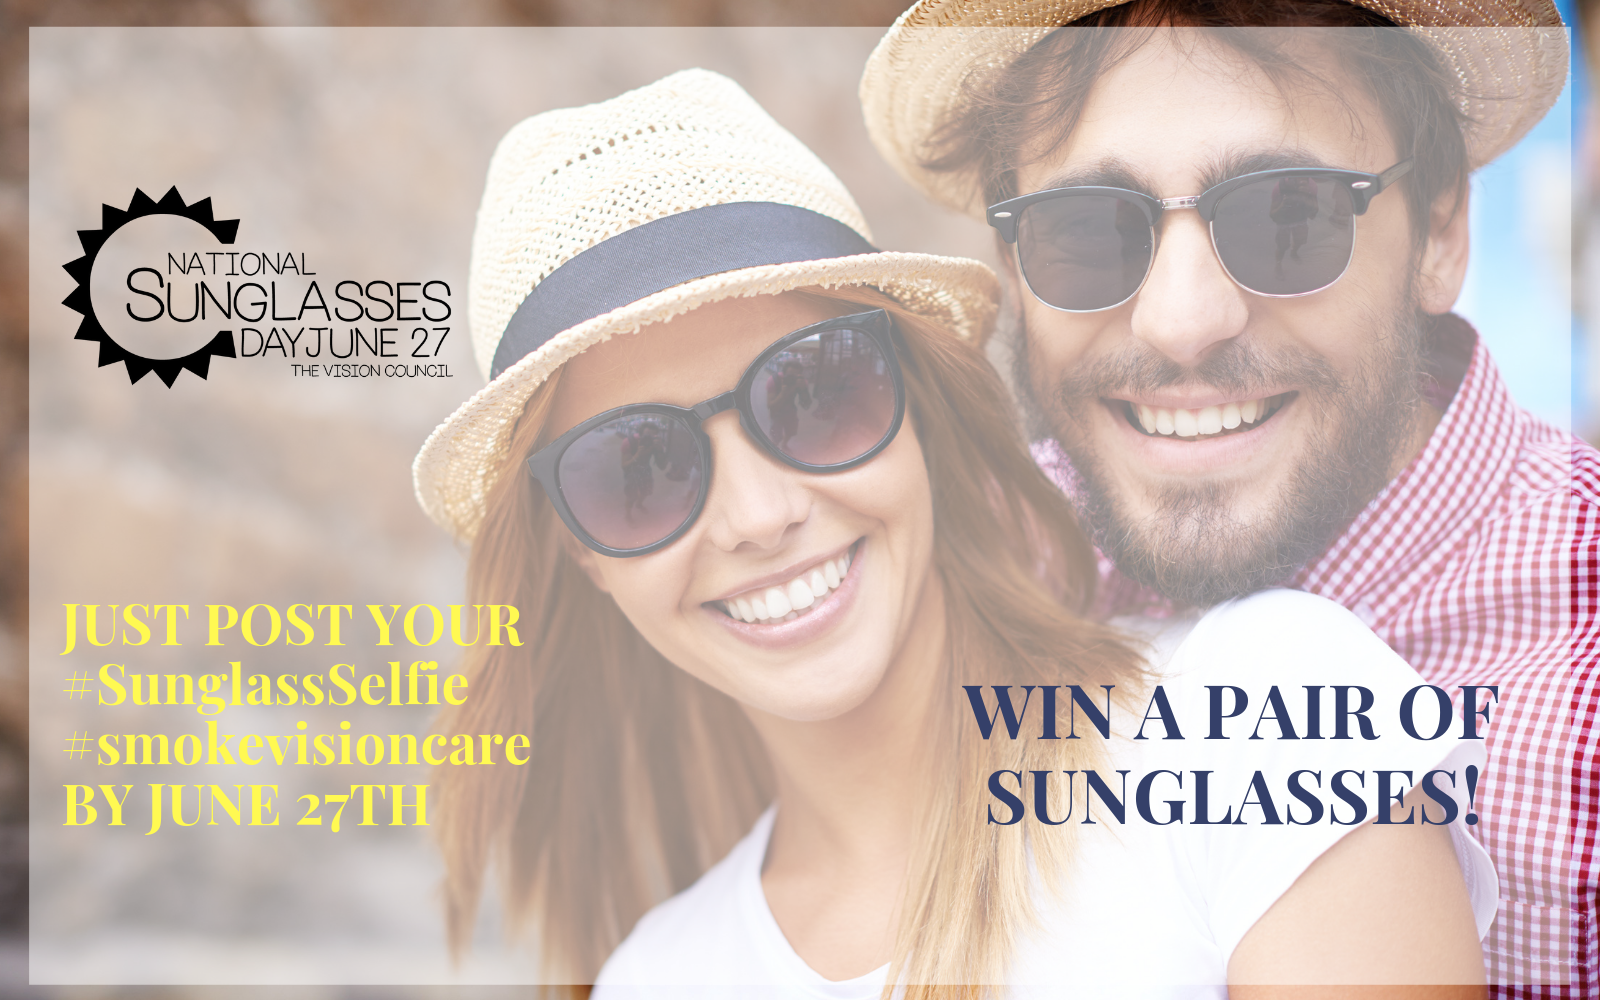 SUNGLASSES-GIVE-AWAY-WEBPAGE.png